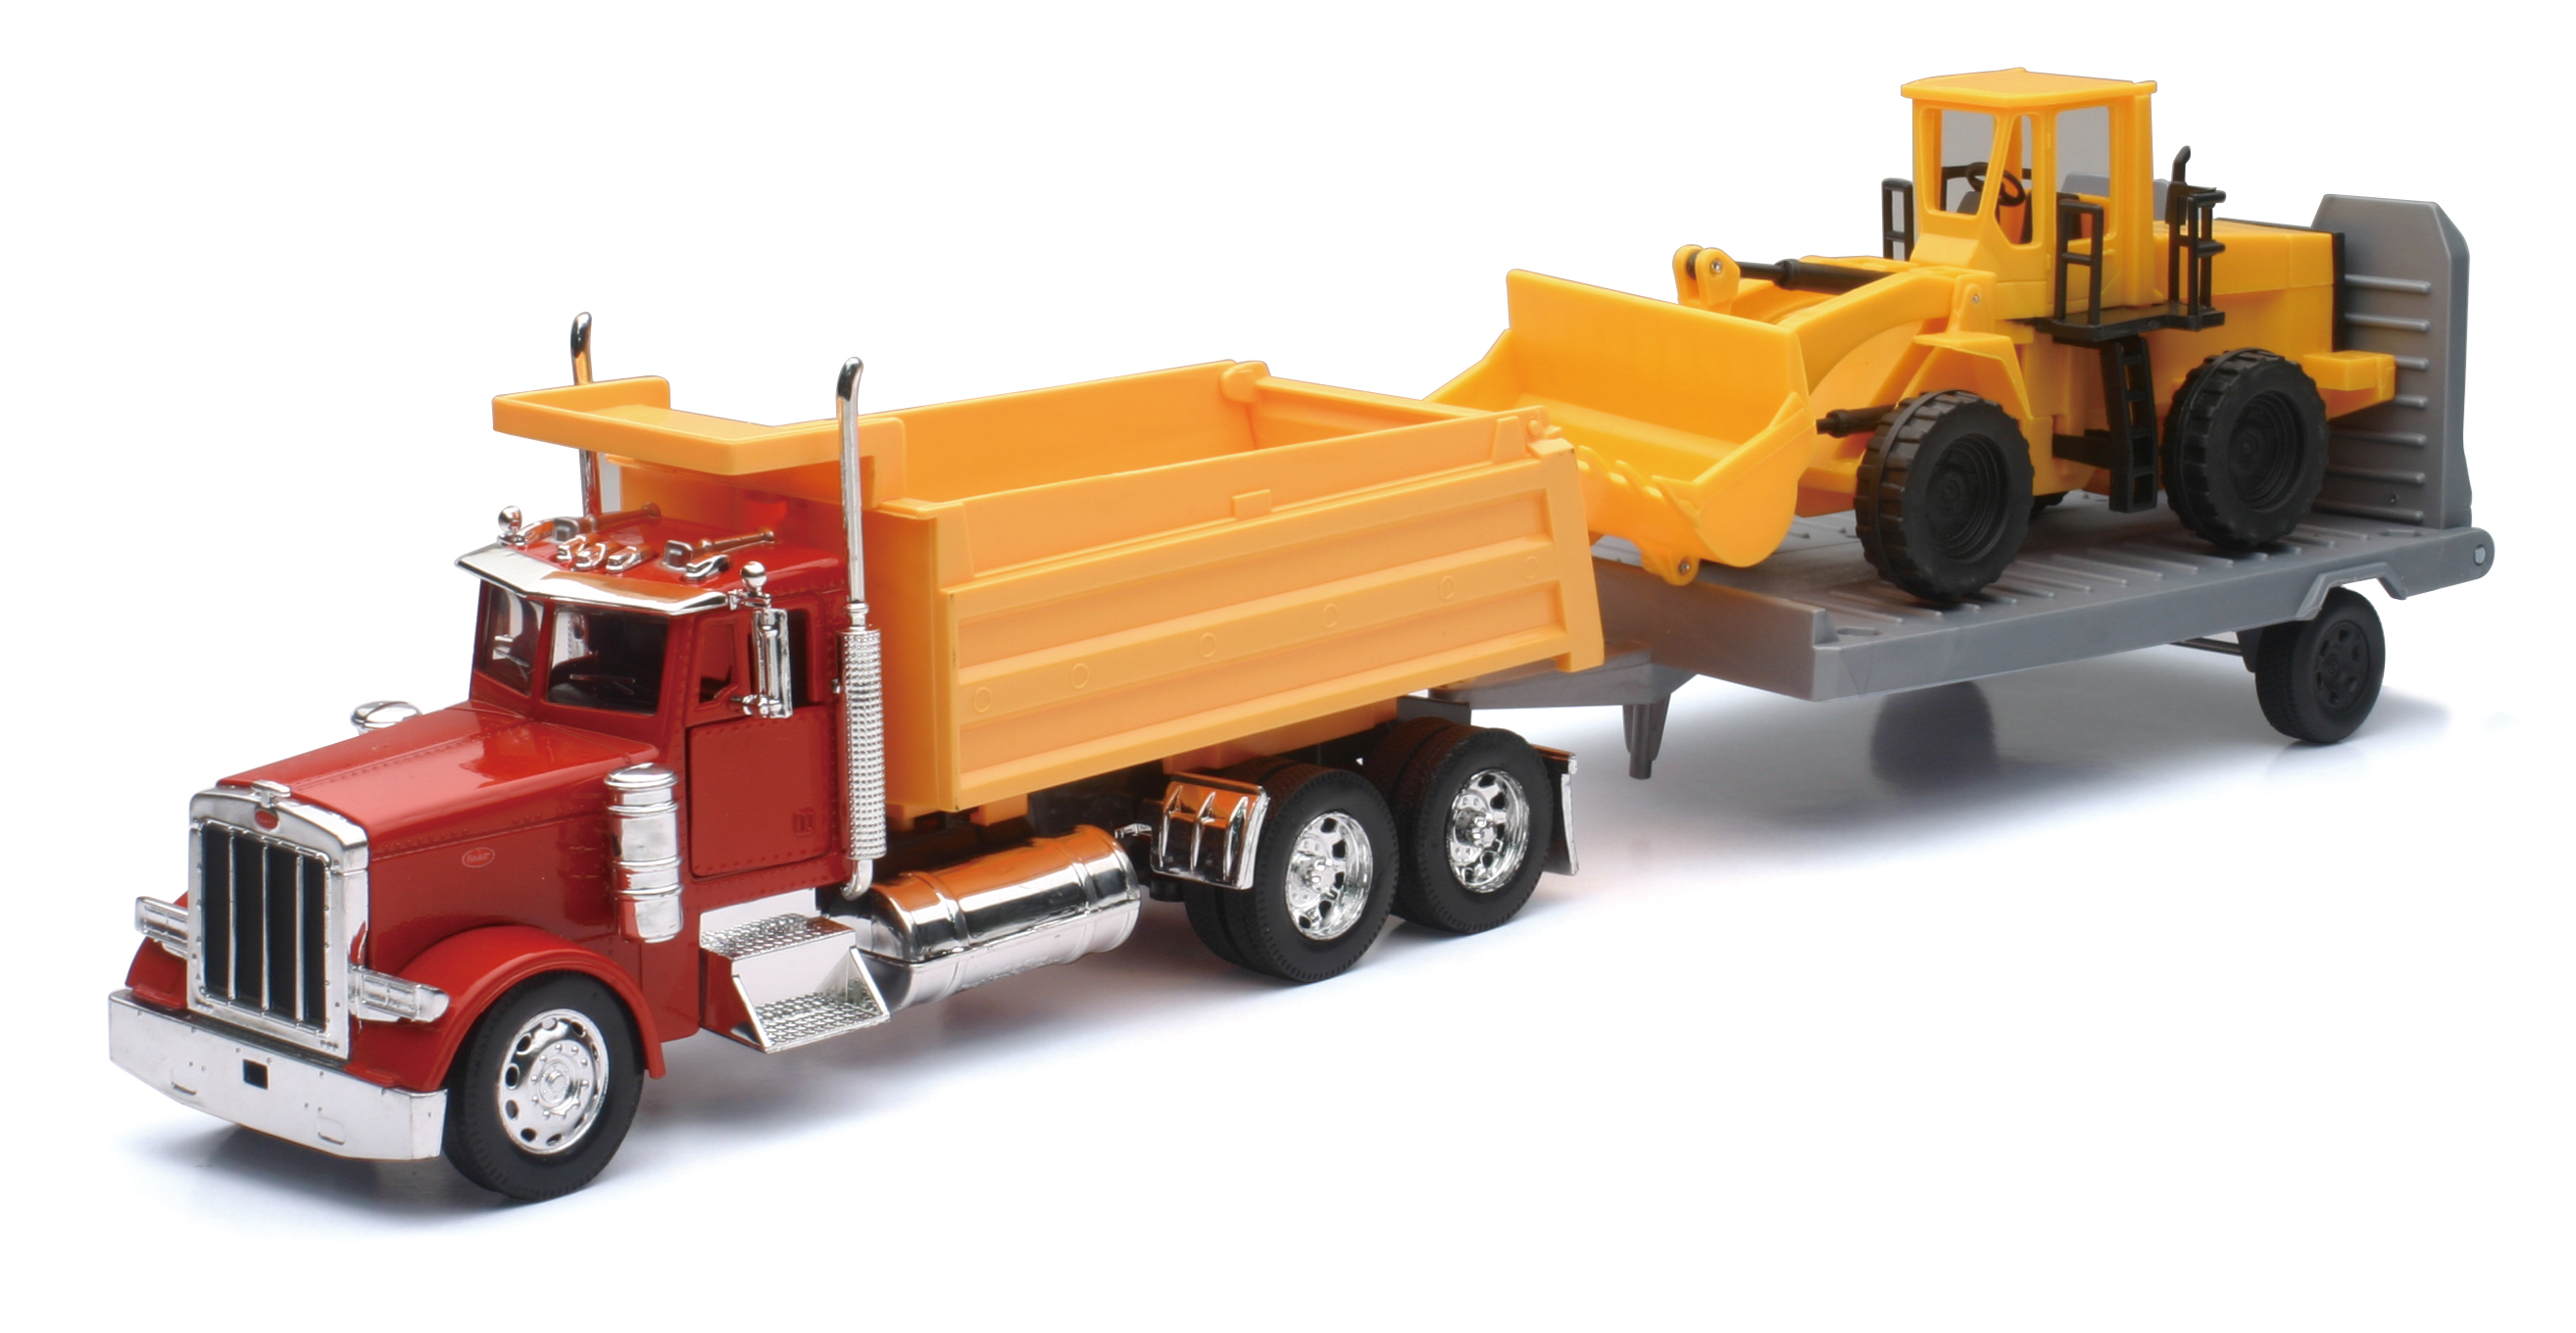 Peterbilt Dump Truck with Wheel Loader and Flatbed Trailer